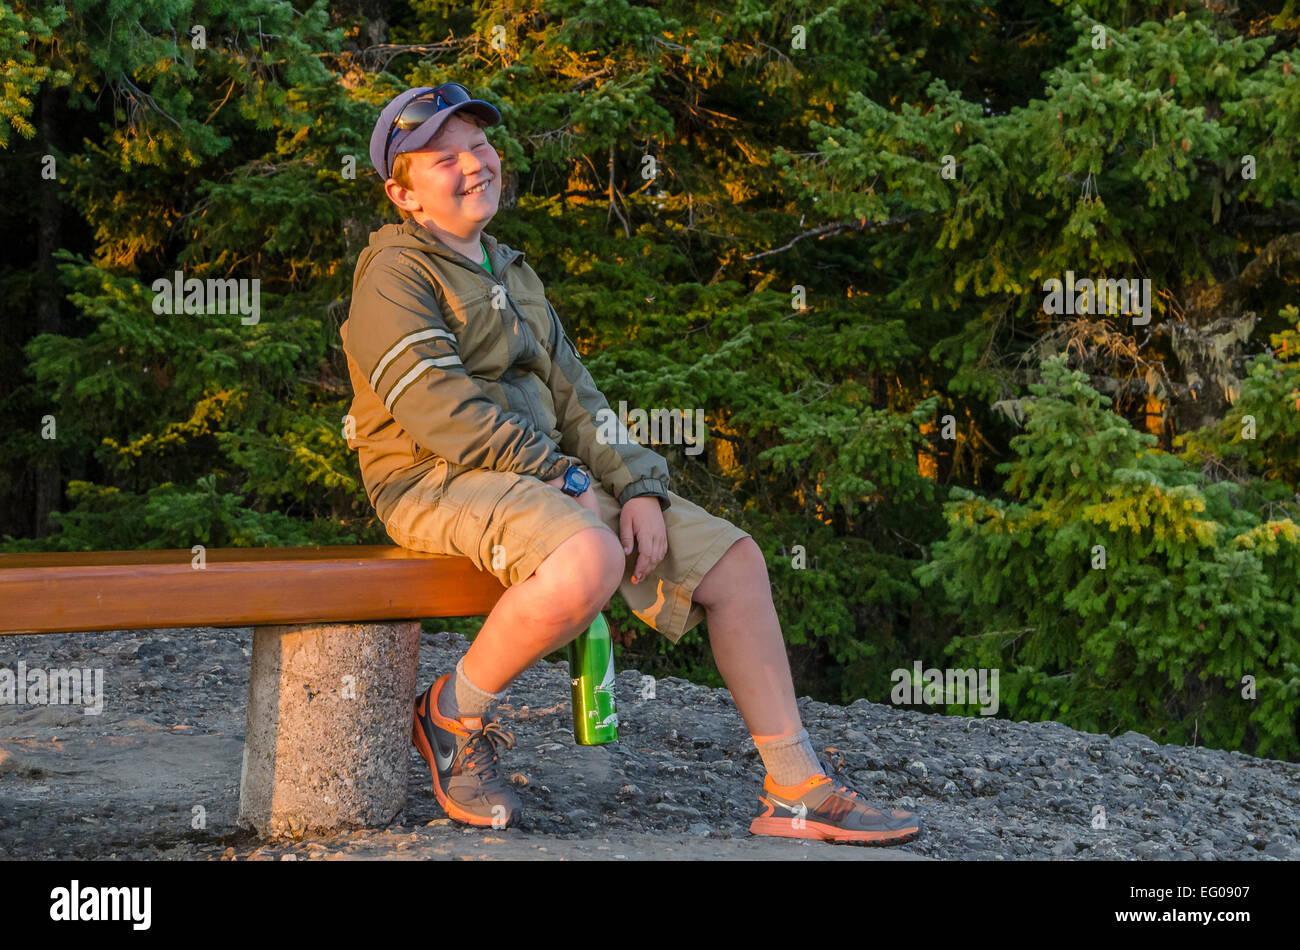 Boy laughing on bench - Stock Image